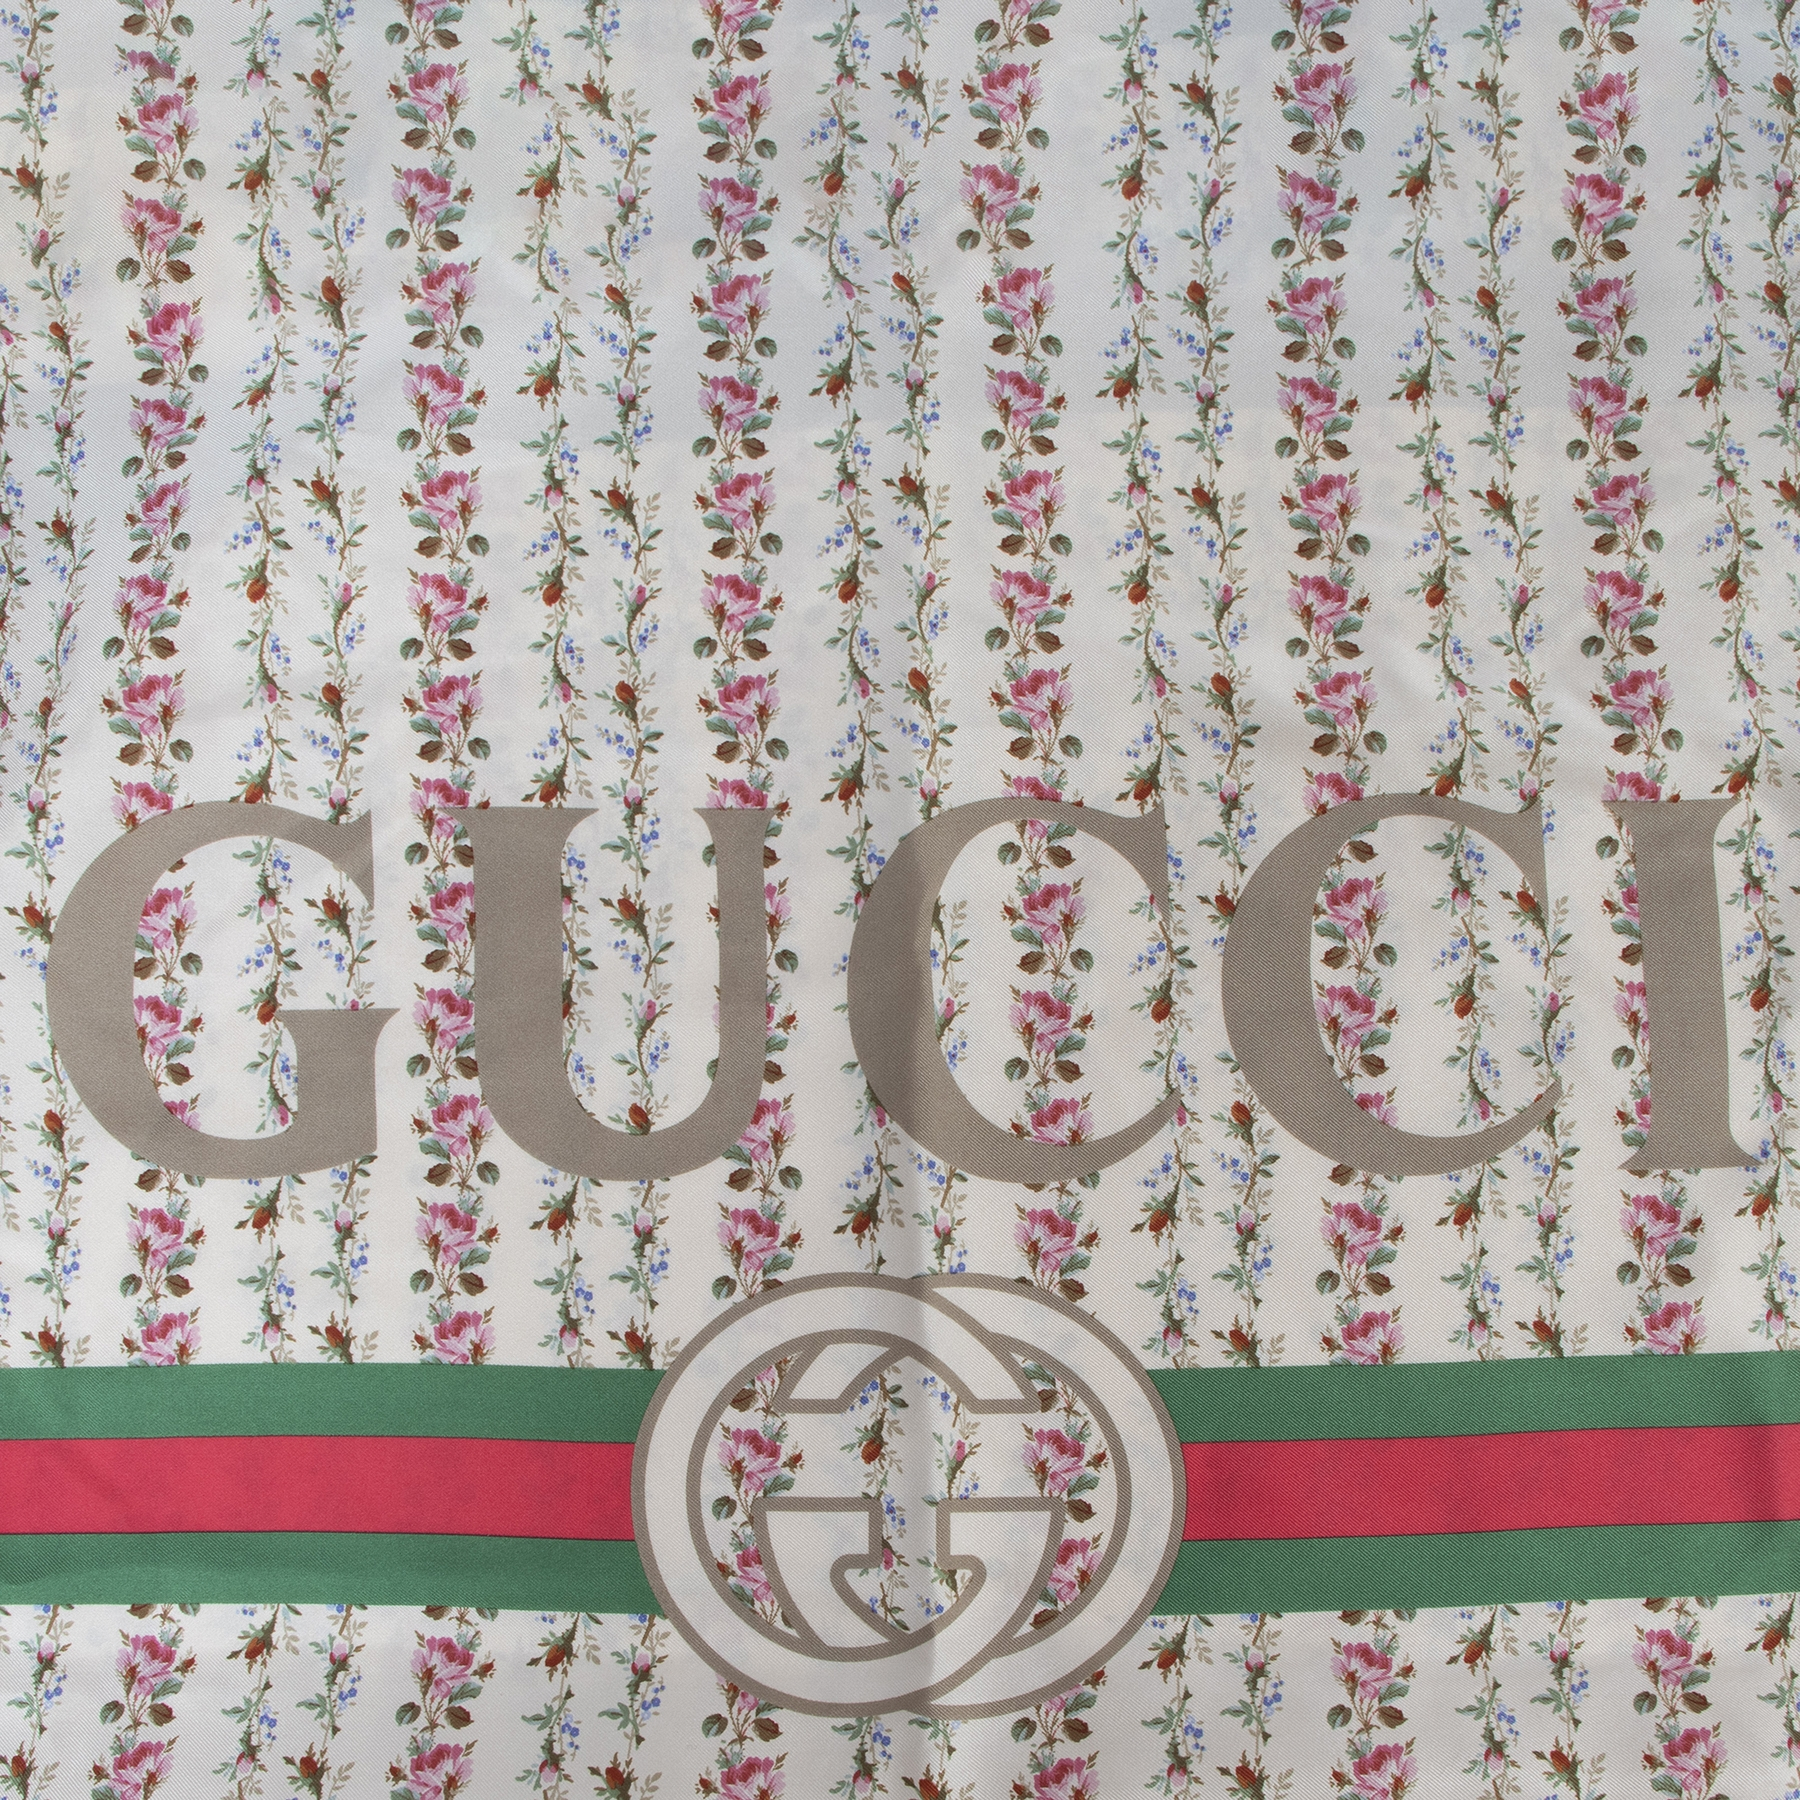 Authentic secondhand Gucci Floral GG Web Silk Scarf designer accessories fashion luxury vintage webshop safe secure online shopping